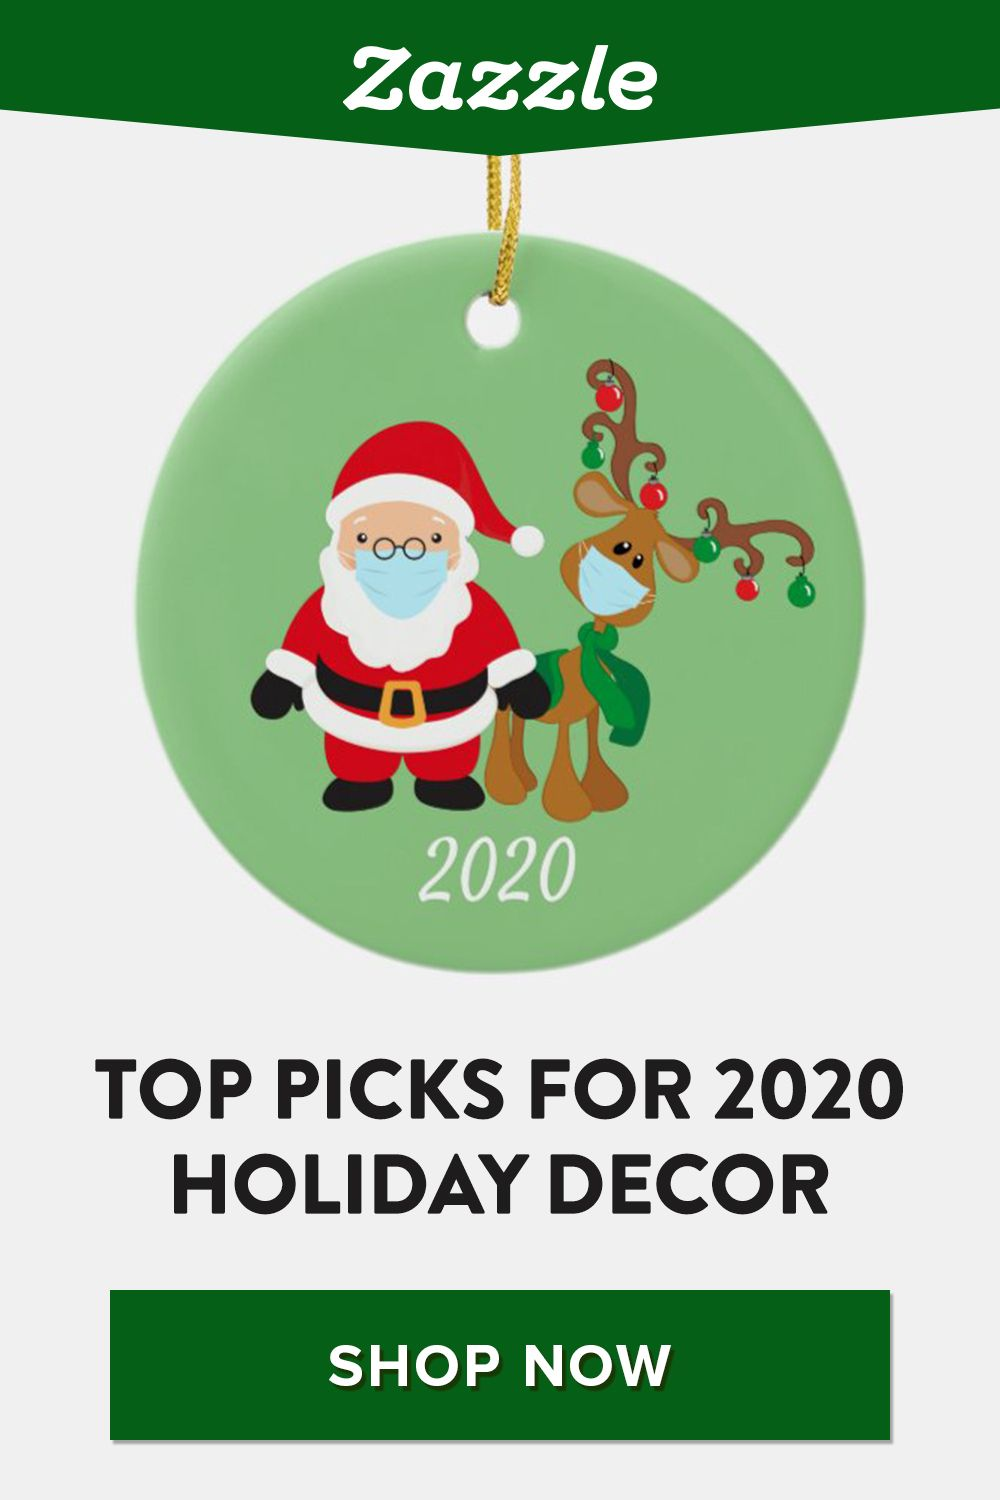 🎄 See our editors' top picks for 2020 holiday decor. Shop and save on ornaments, pillows, stockings and more.